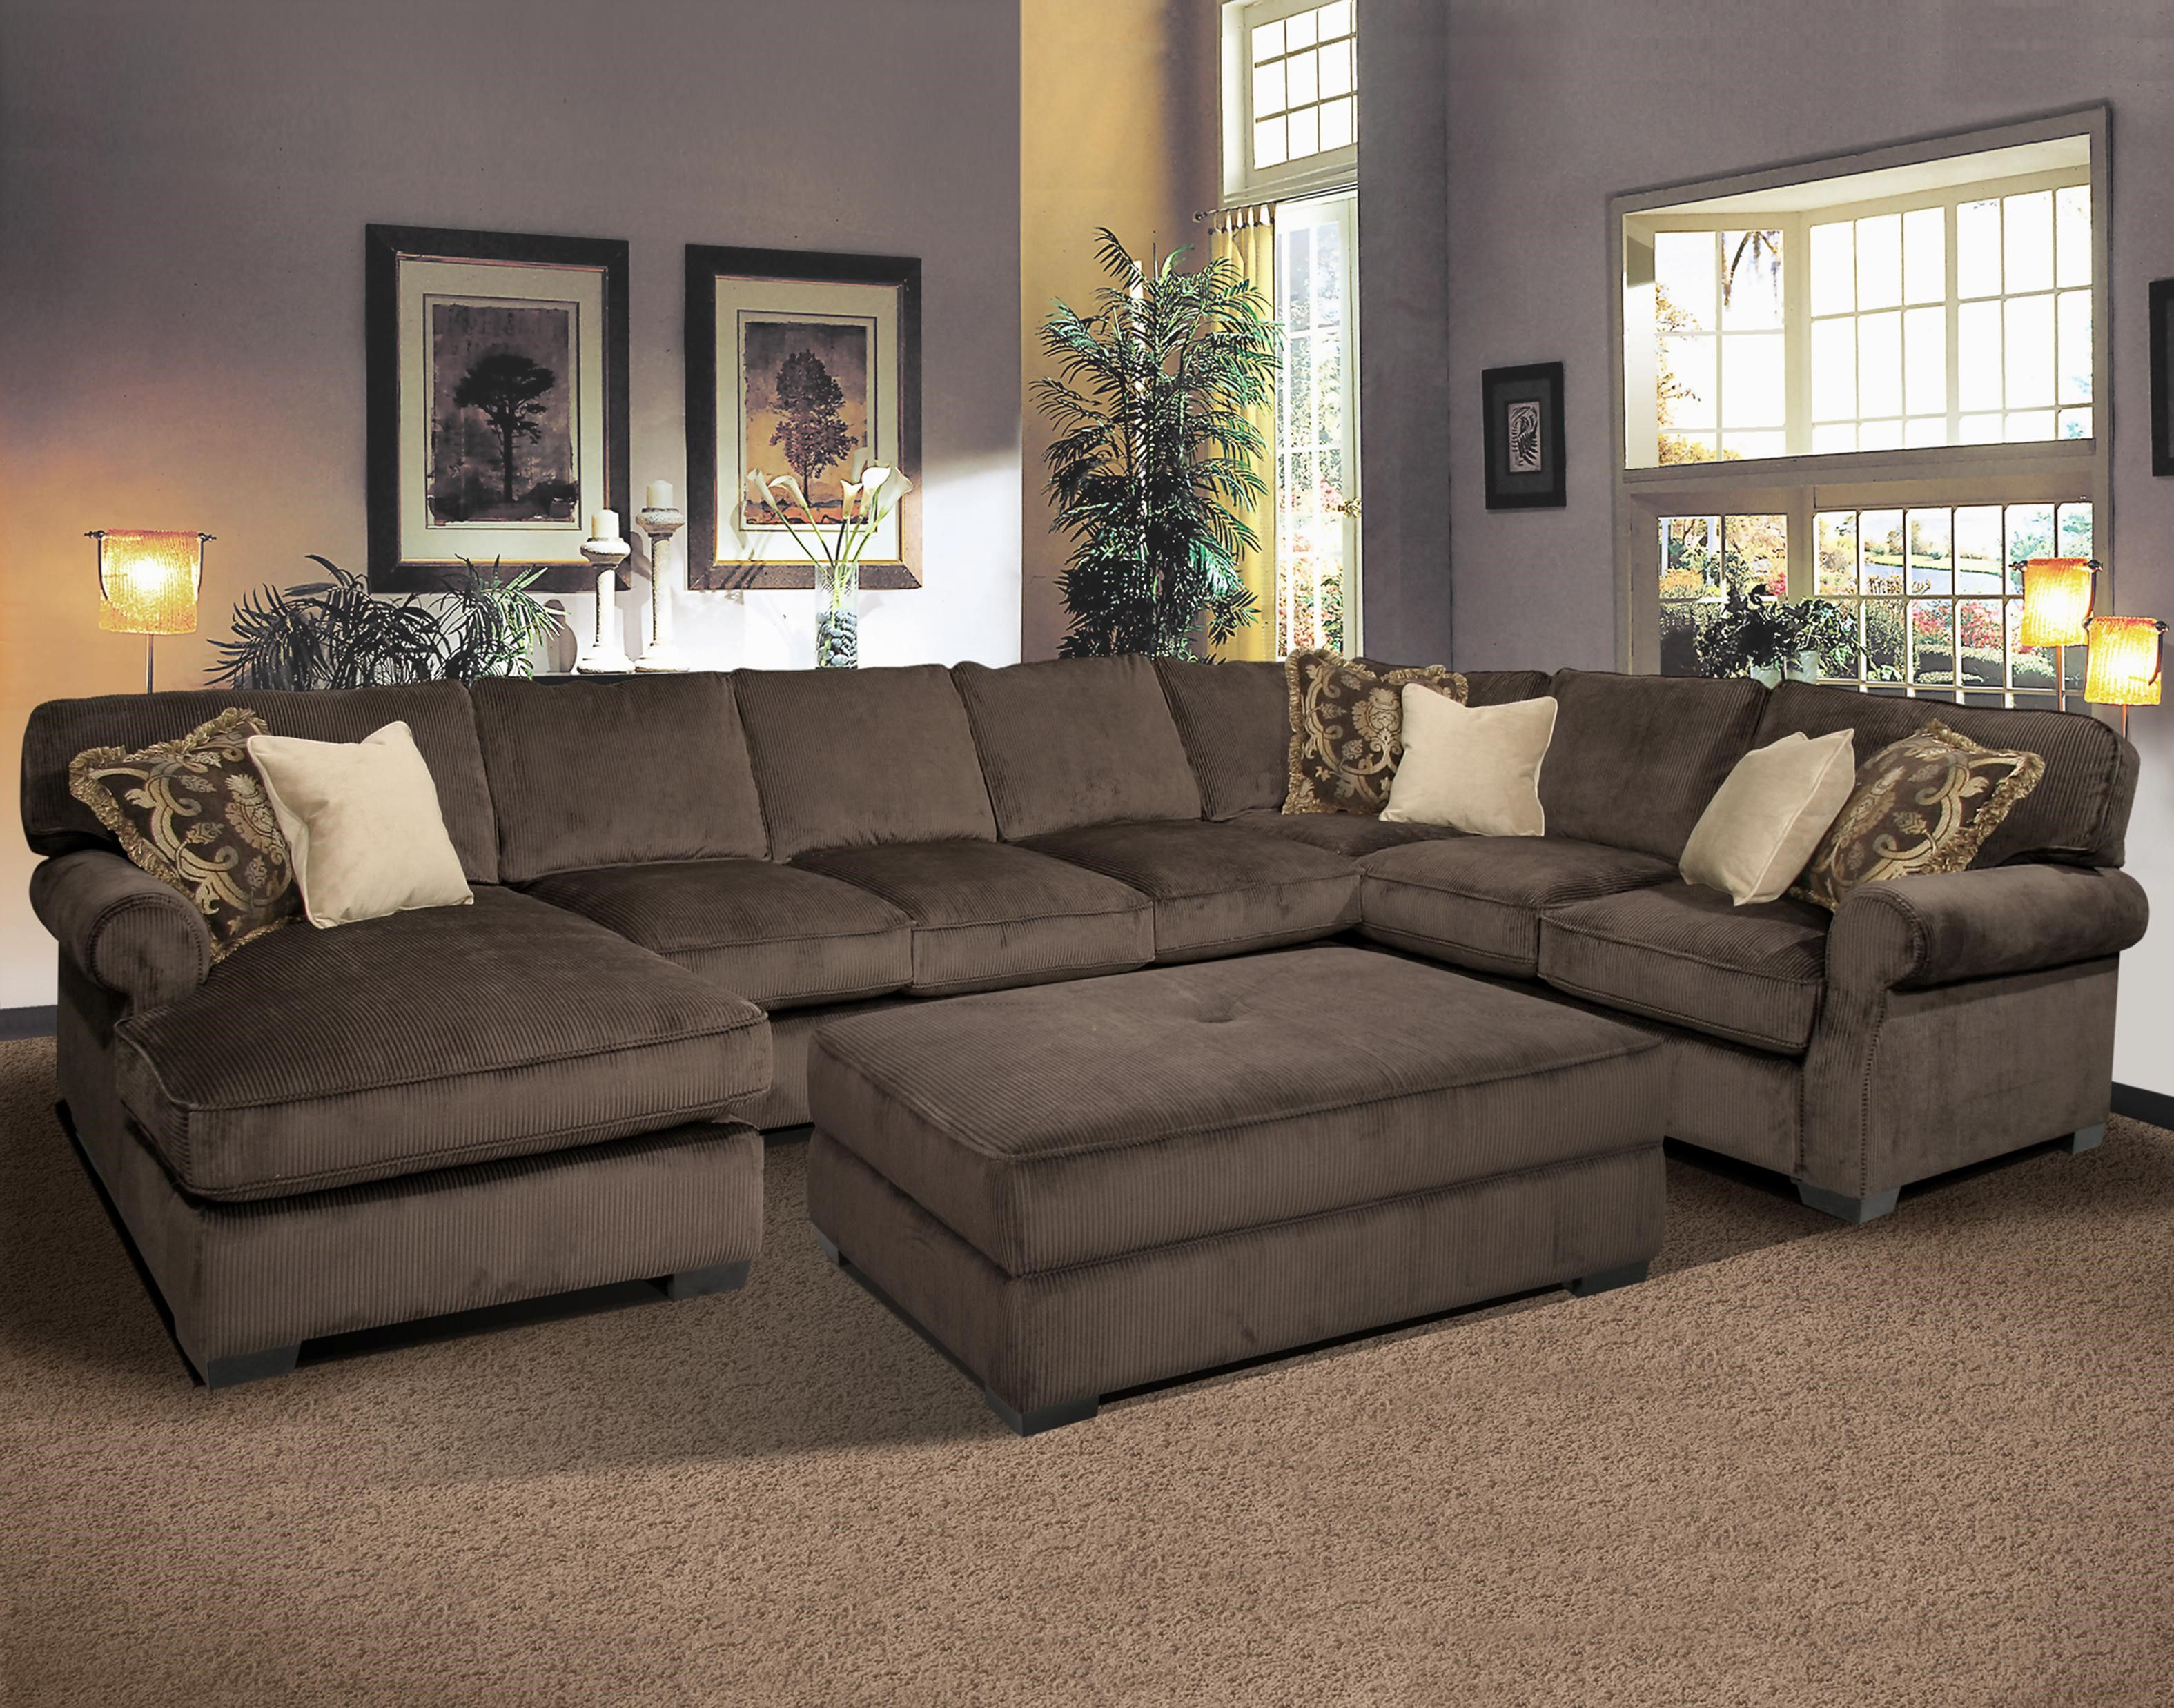 Comfortable Living Room Sofas Design with Elegant Overstuffed Couches  Sales